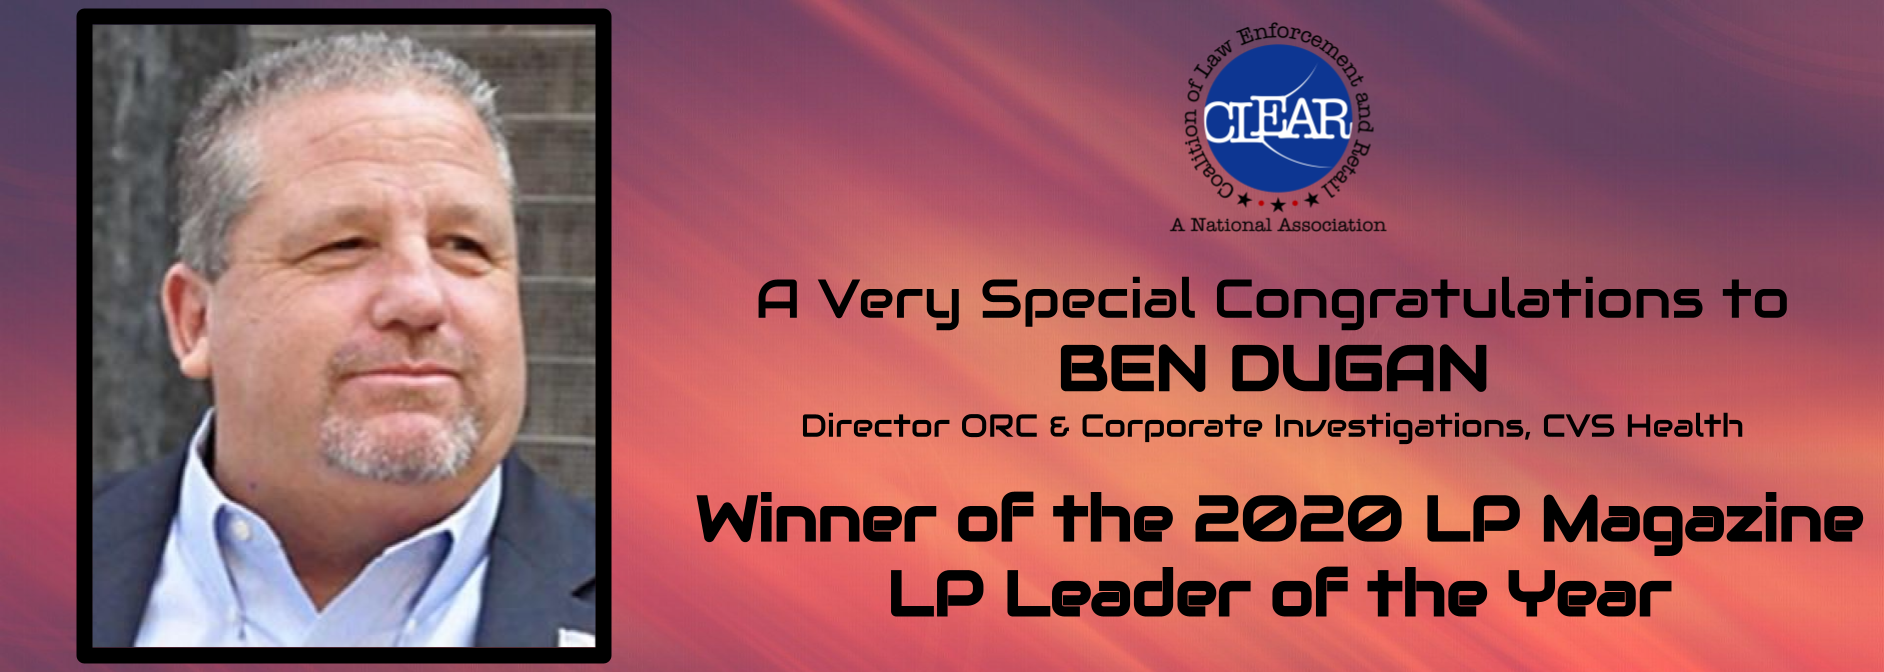 CLEAR Ben 2020 LPM LP Leader of the Year (2)